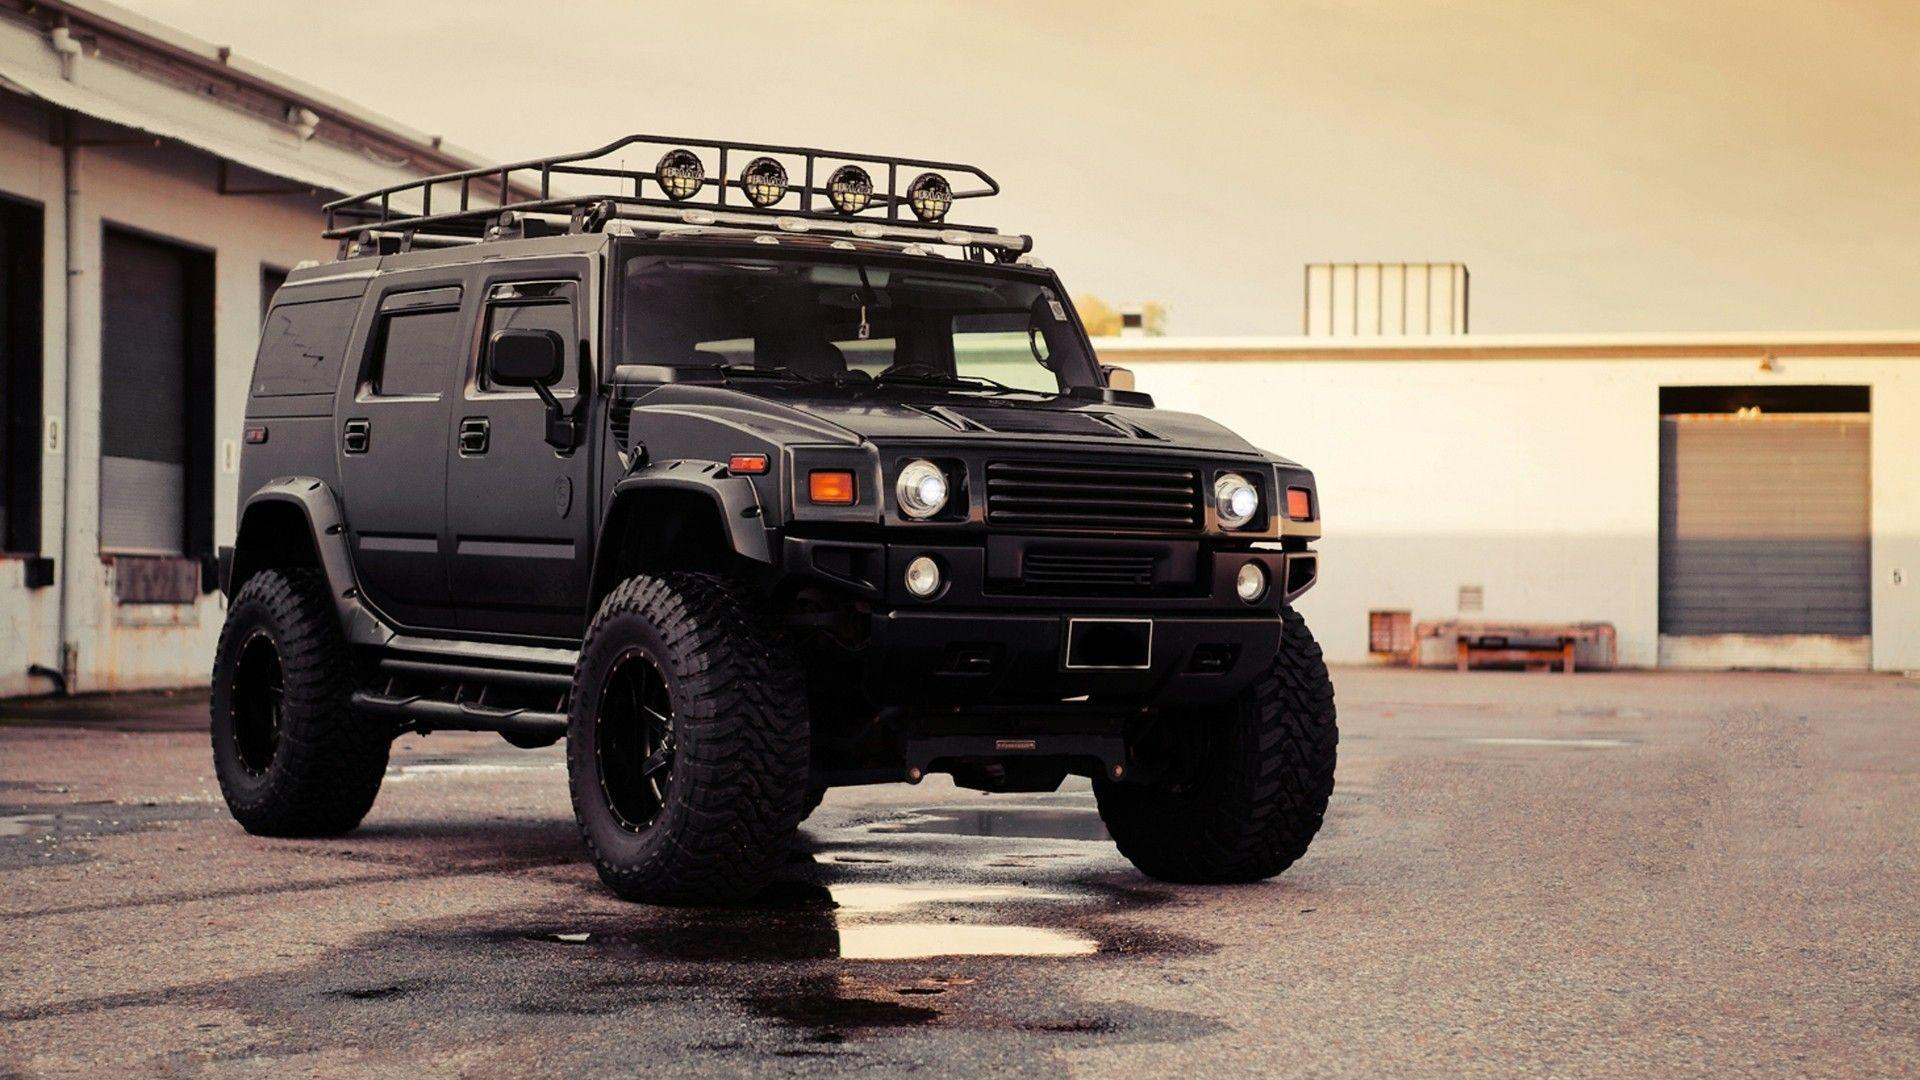 Hummer H2 Lifted Car